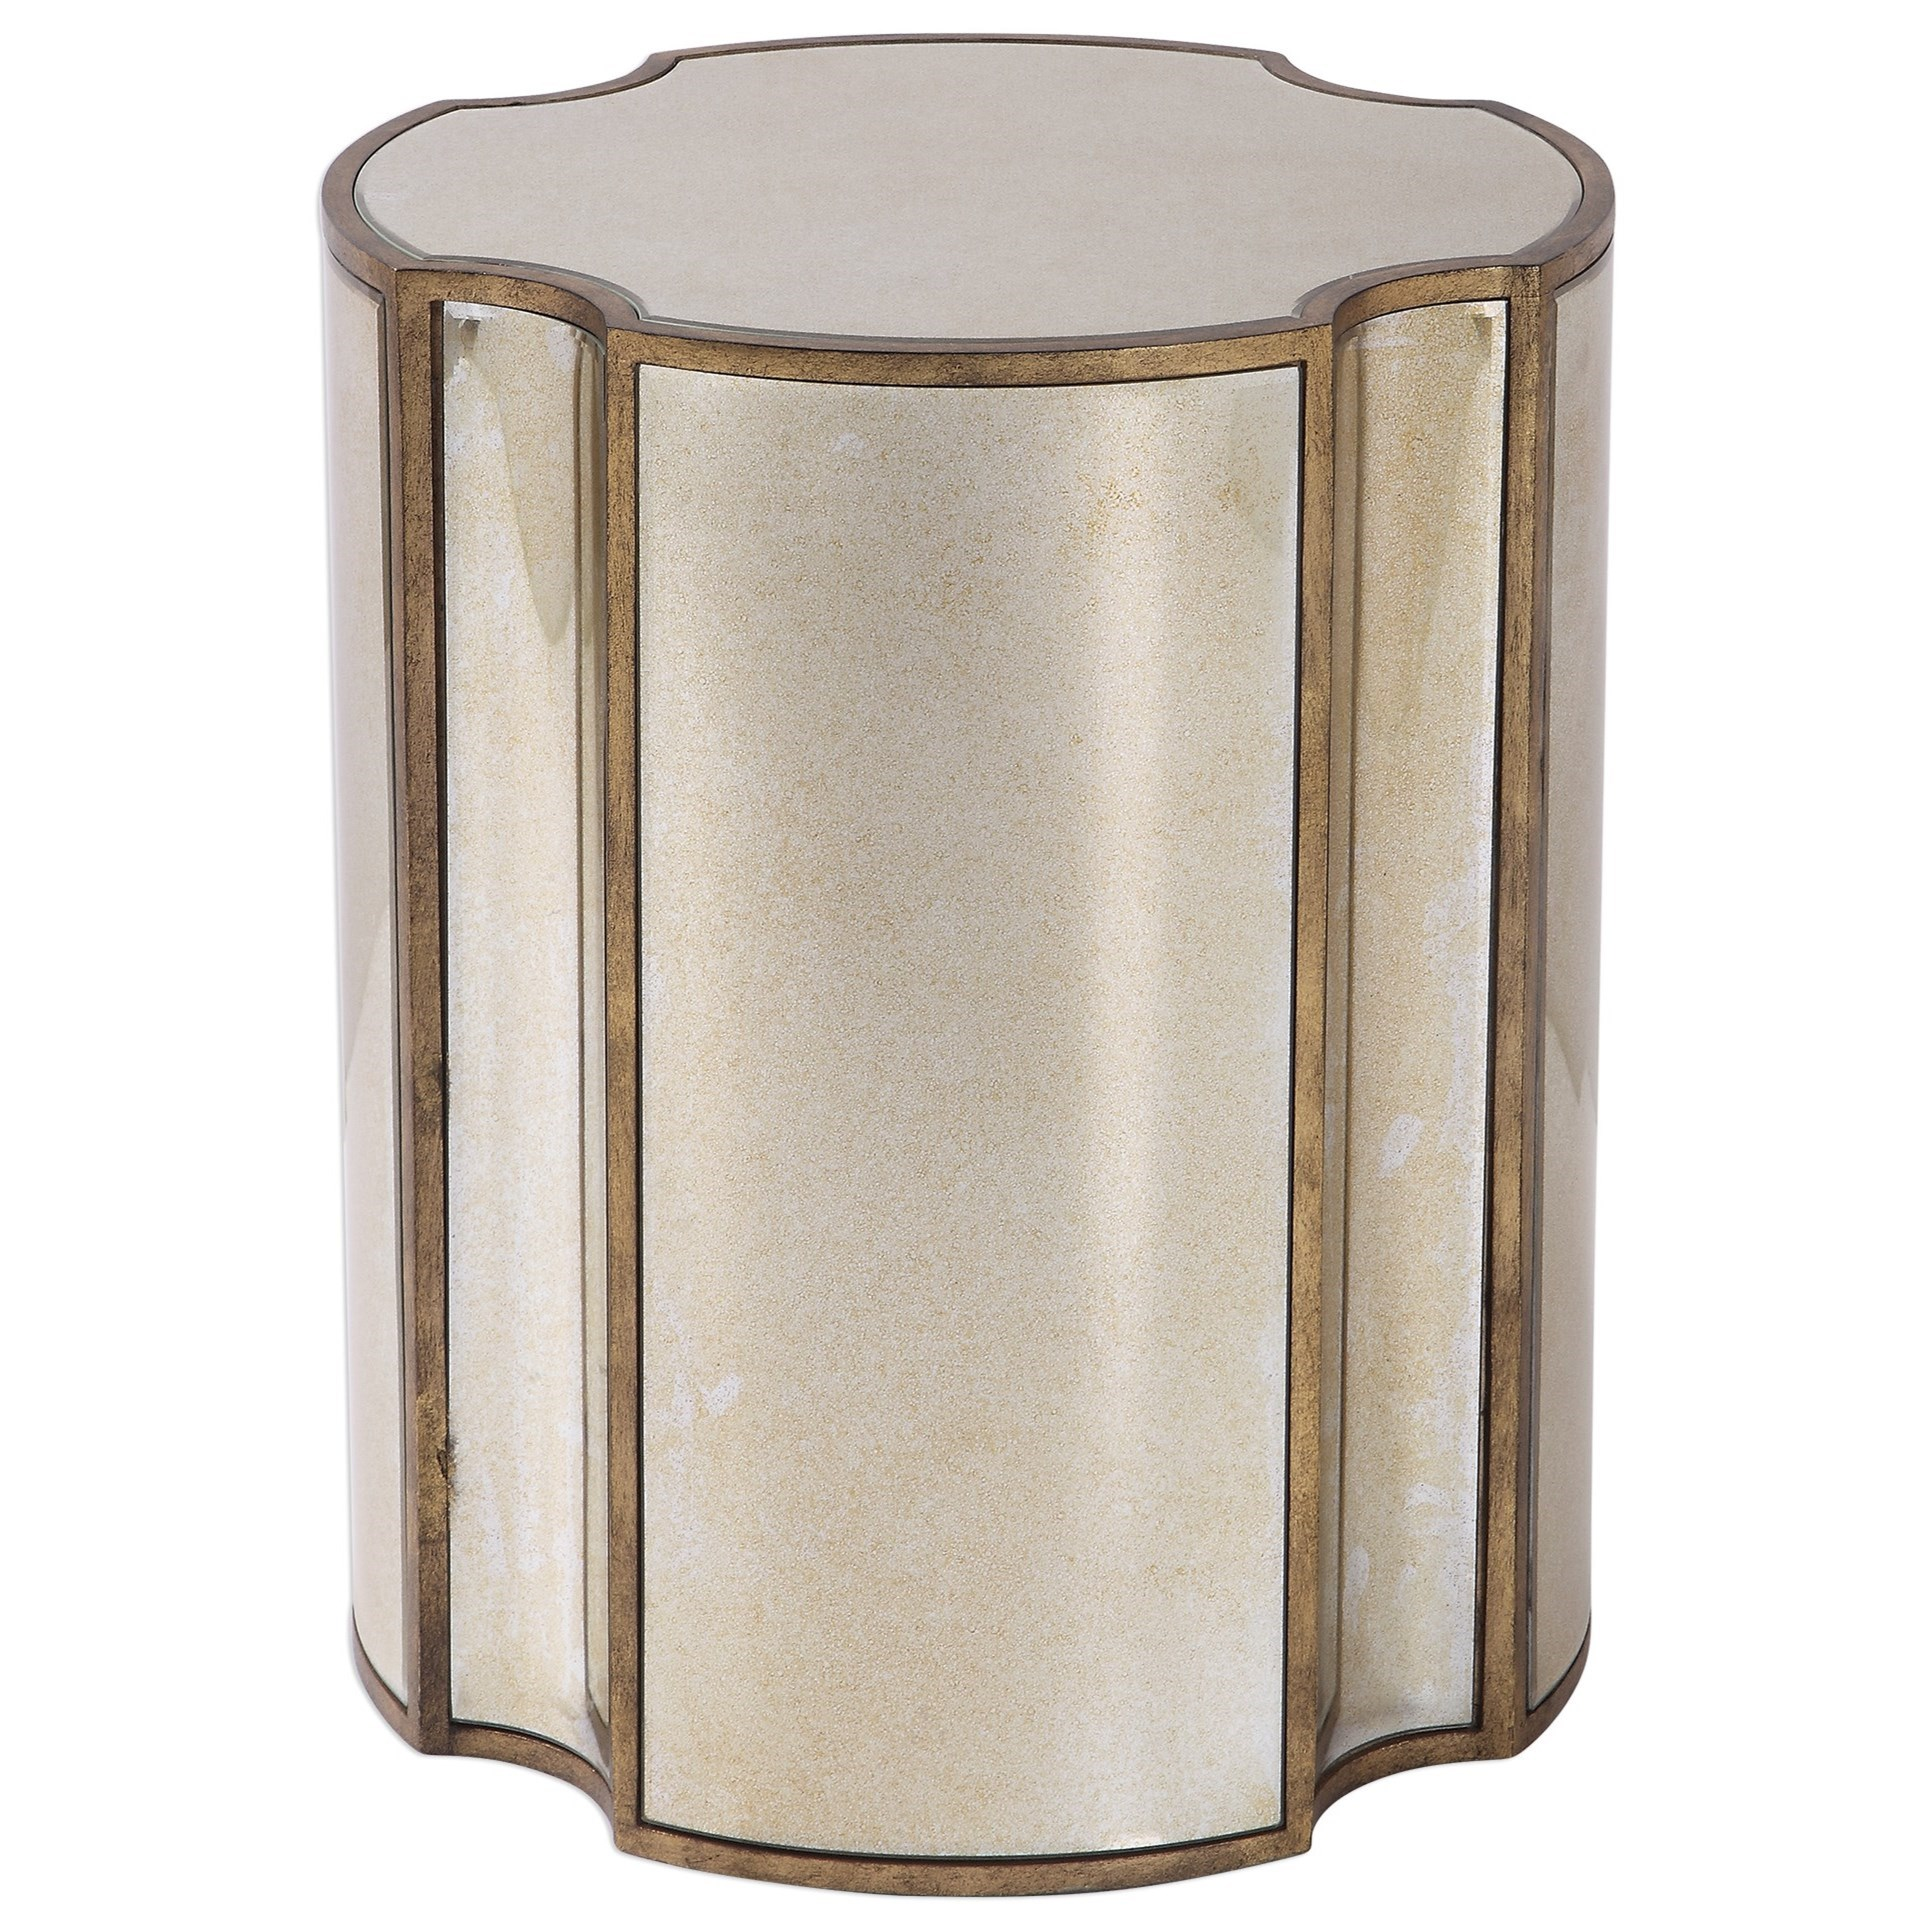 Accent Furniture - Occasional Tables Harlow Mirrored Accent Table by Uttermost at Suburban Furniture